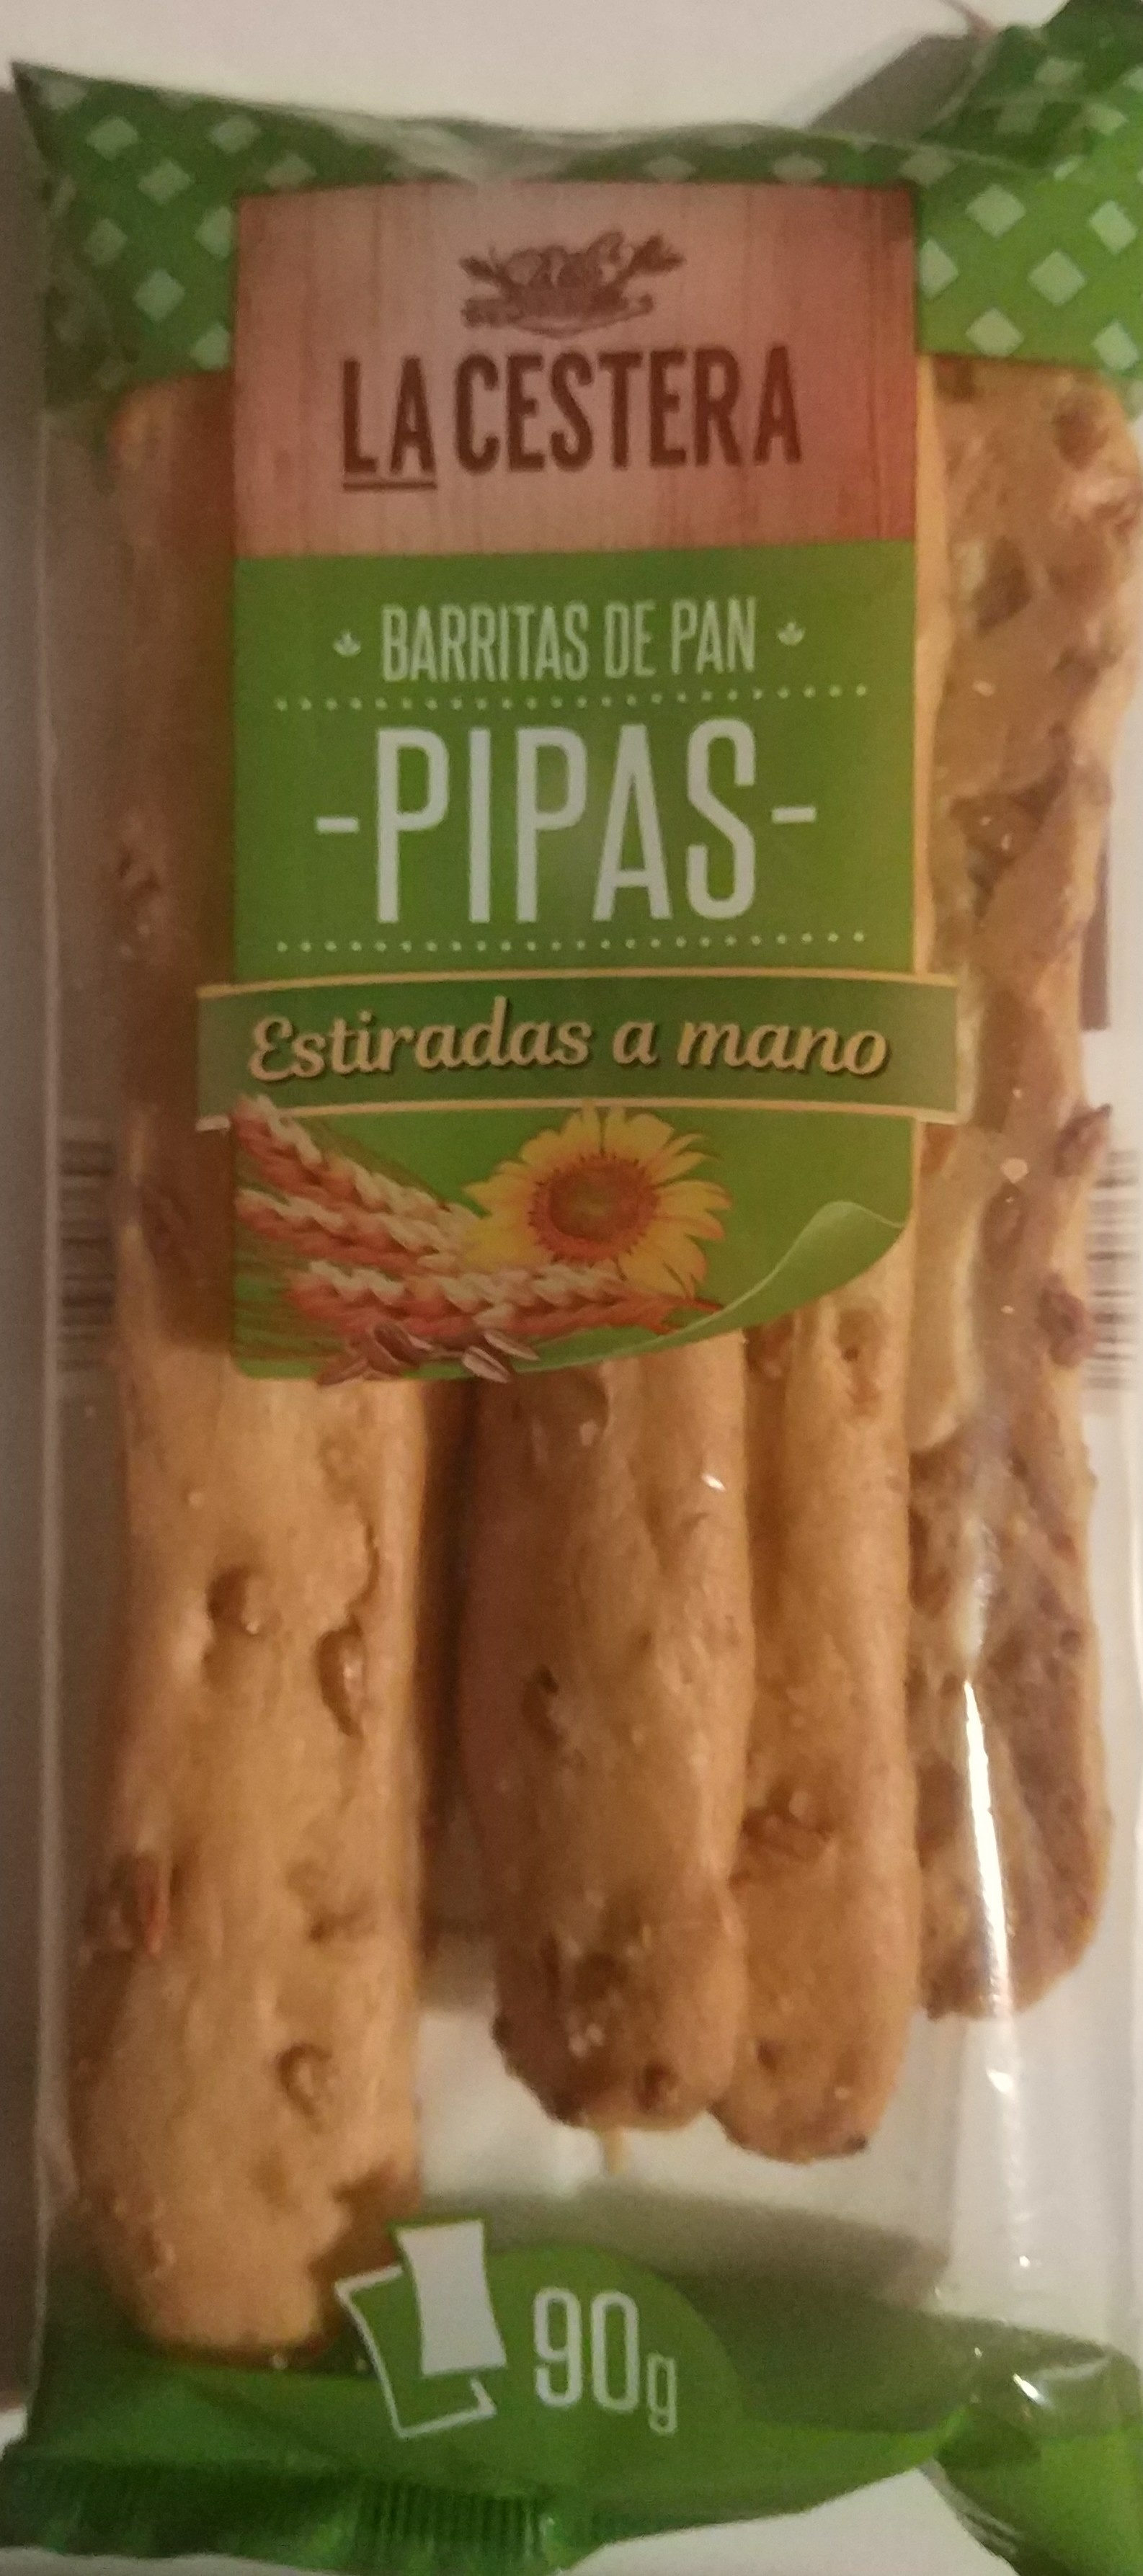 Barritas de Pan -Pipas- - Product